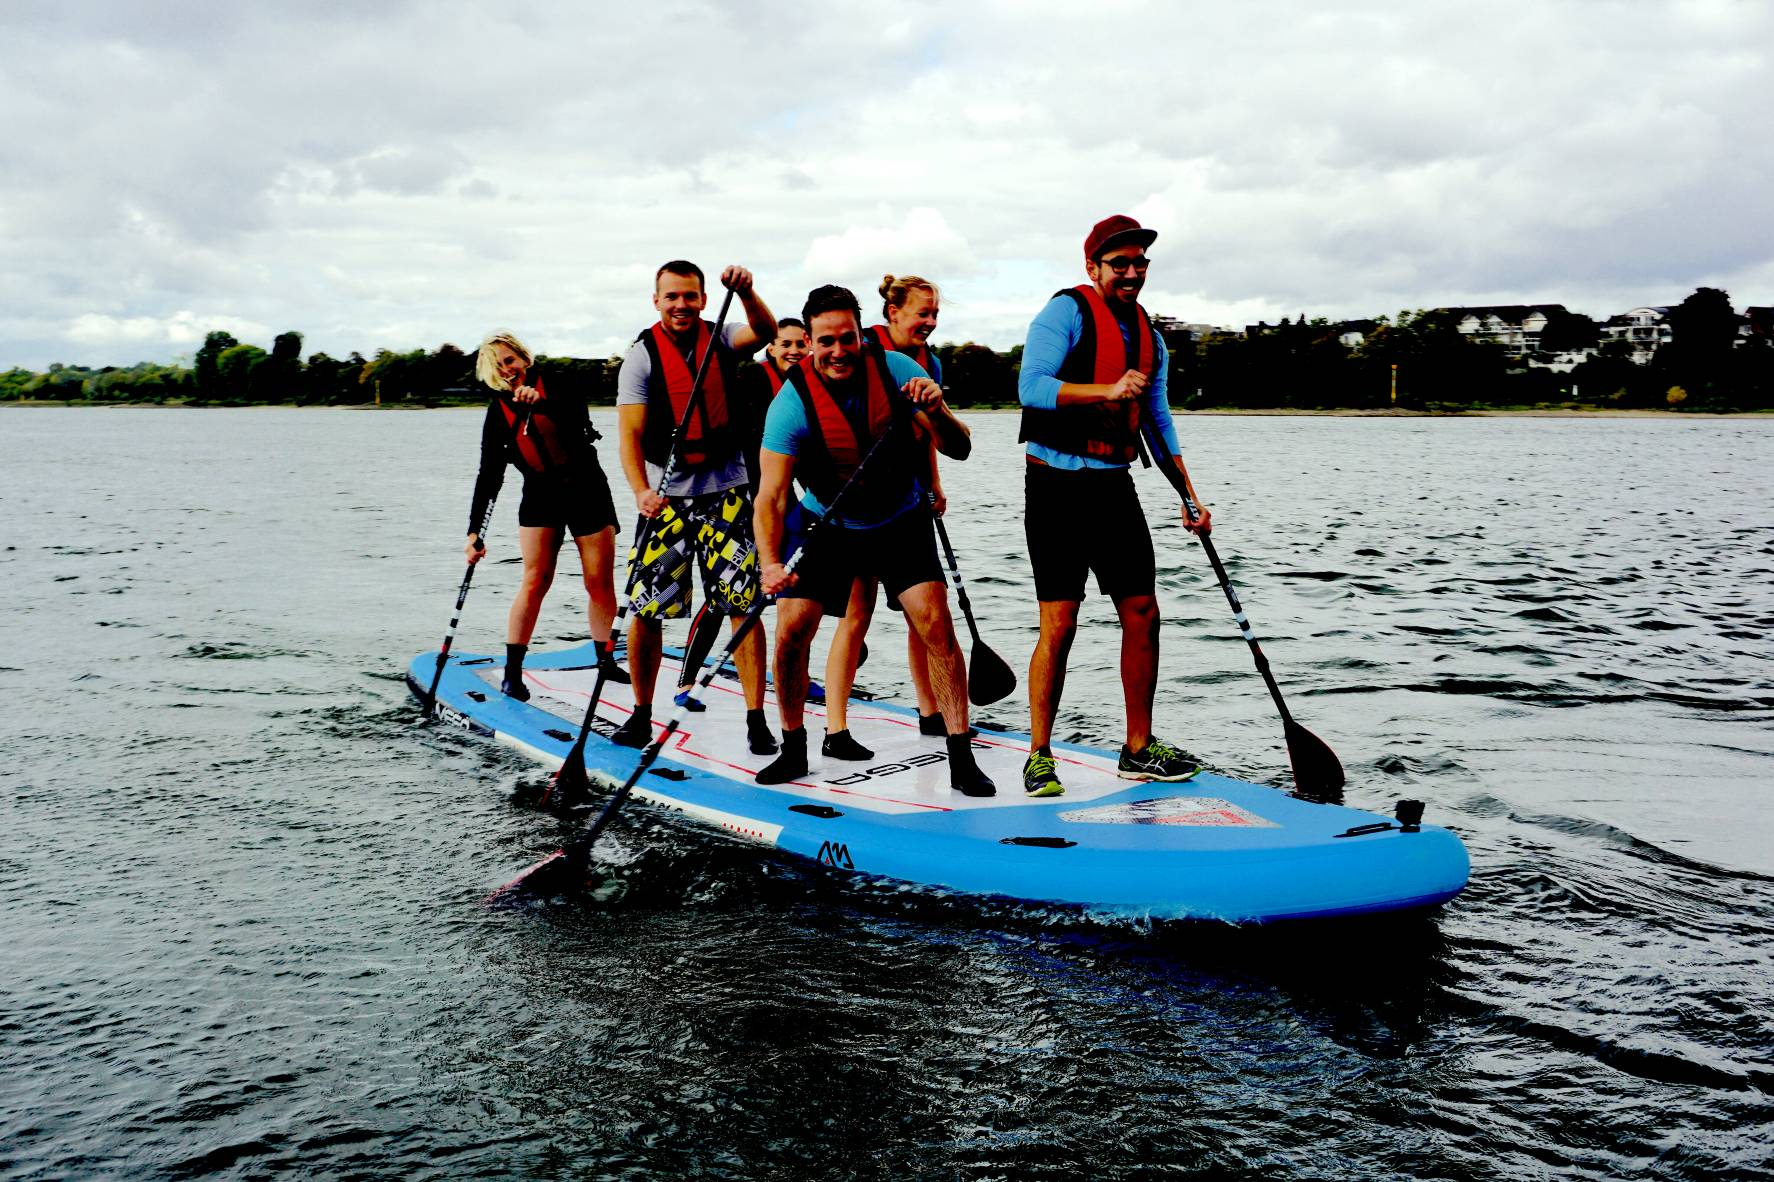 TeamSUP RB Adventuresports 4